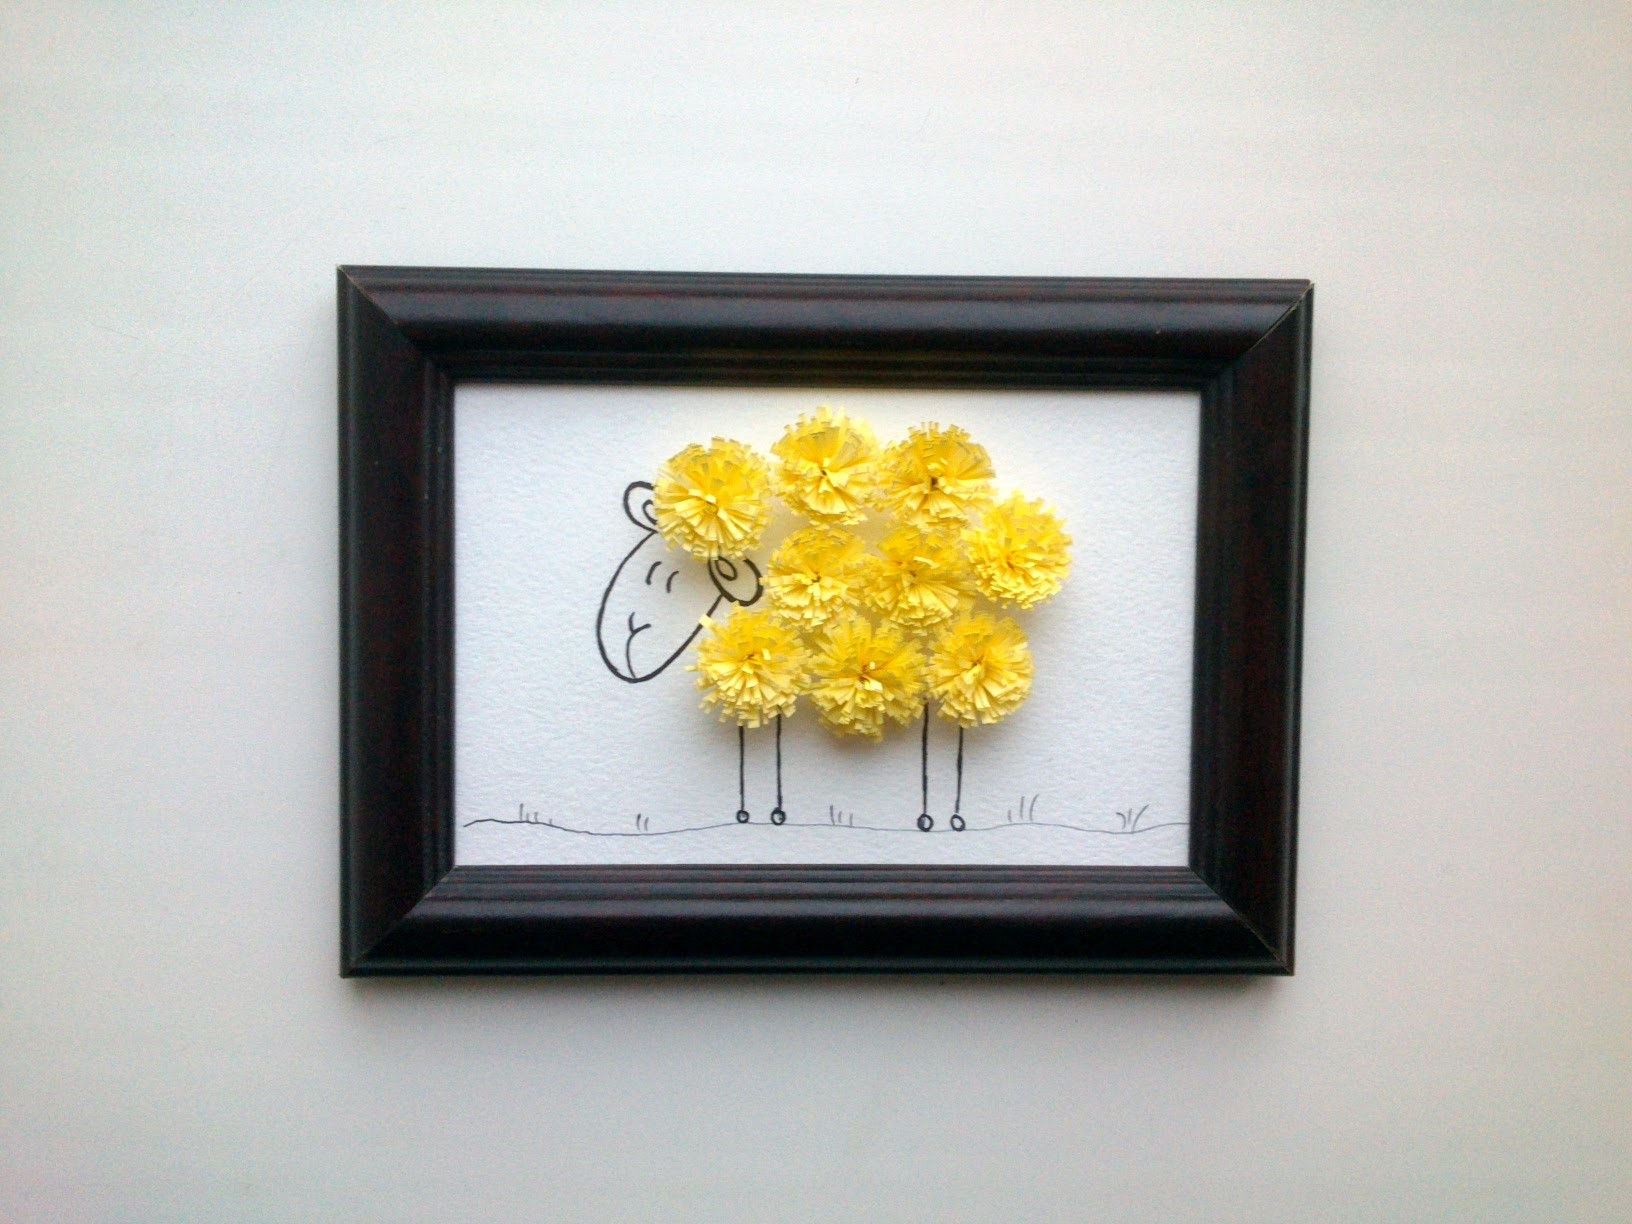 Paper Quilling Design: How to make quilling wall decor with a quilling sheep.